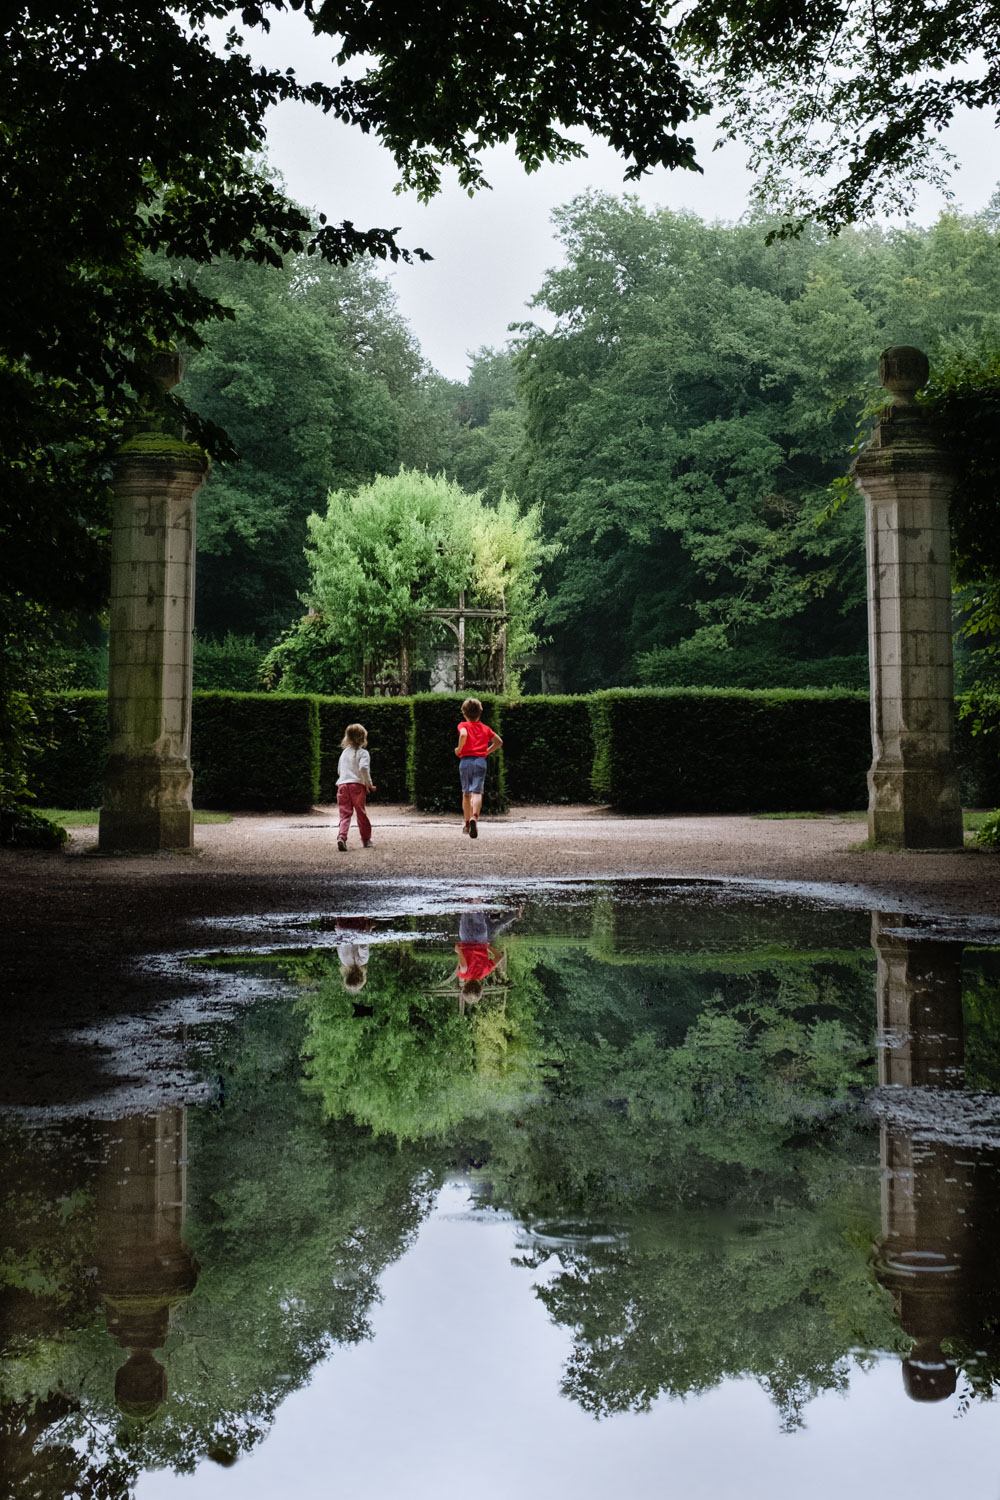 Kids playing in the garden of Chenonceau